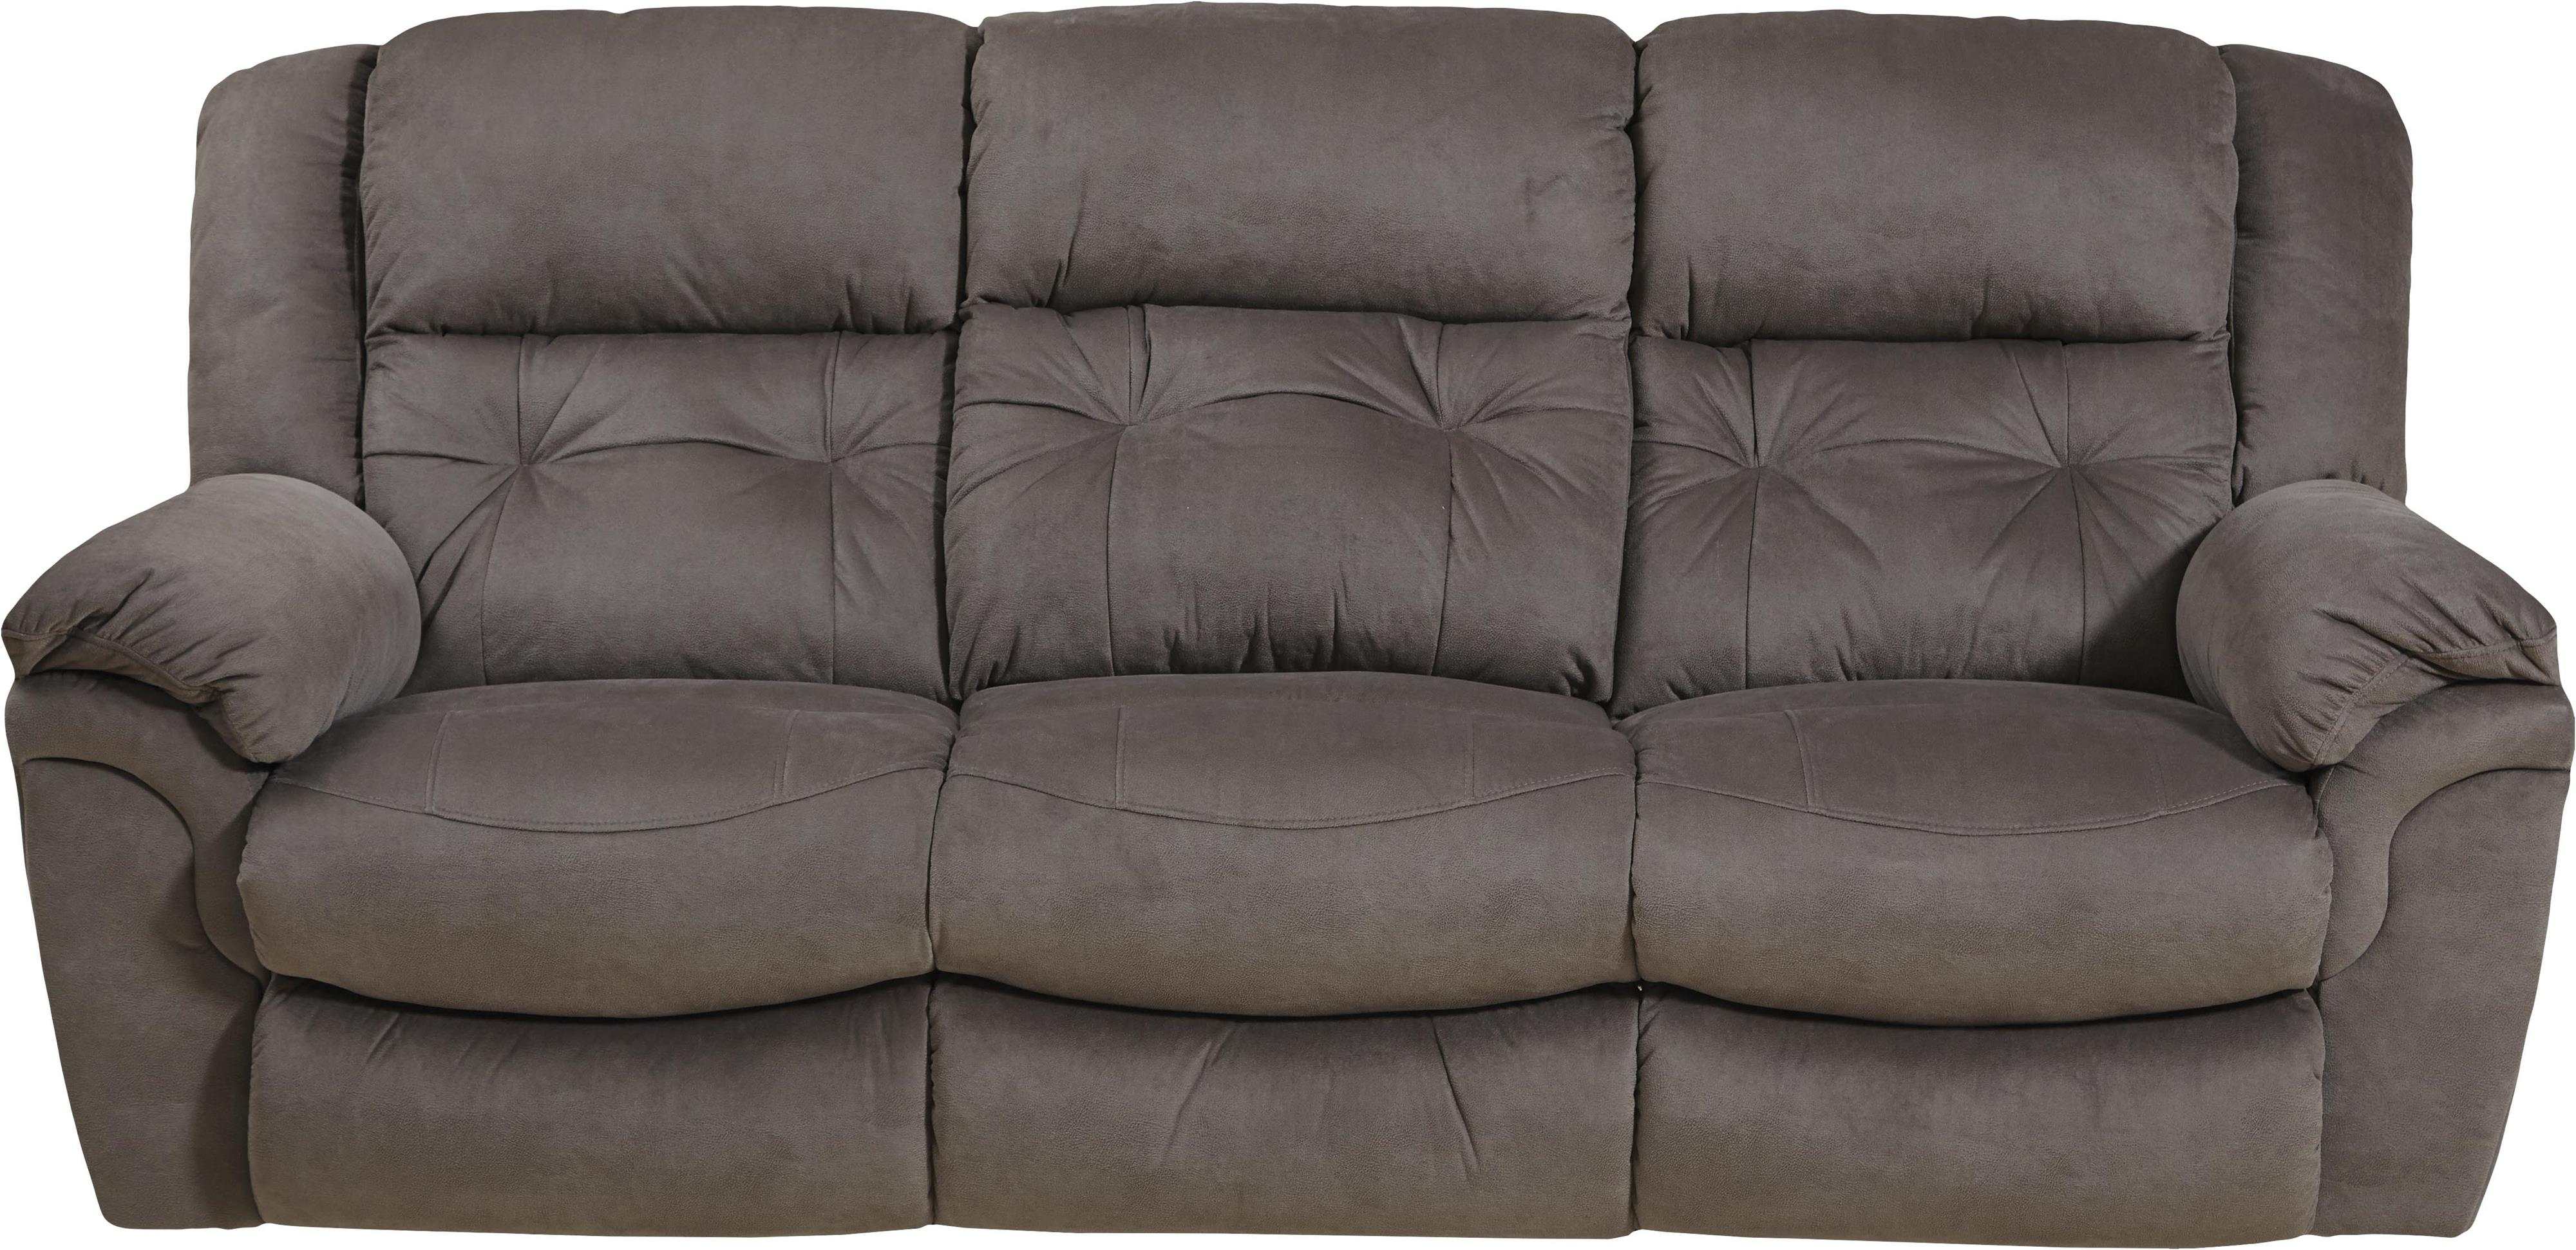 Catnapper Joyner Reclining Sofa With Drop Down Table   Item Number:  4255 2044